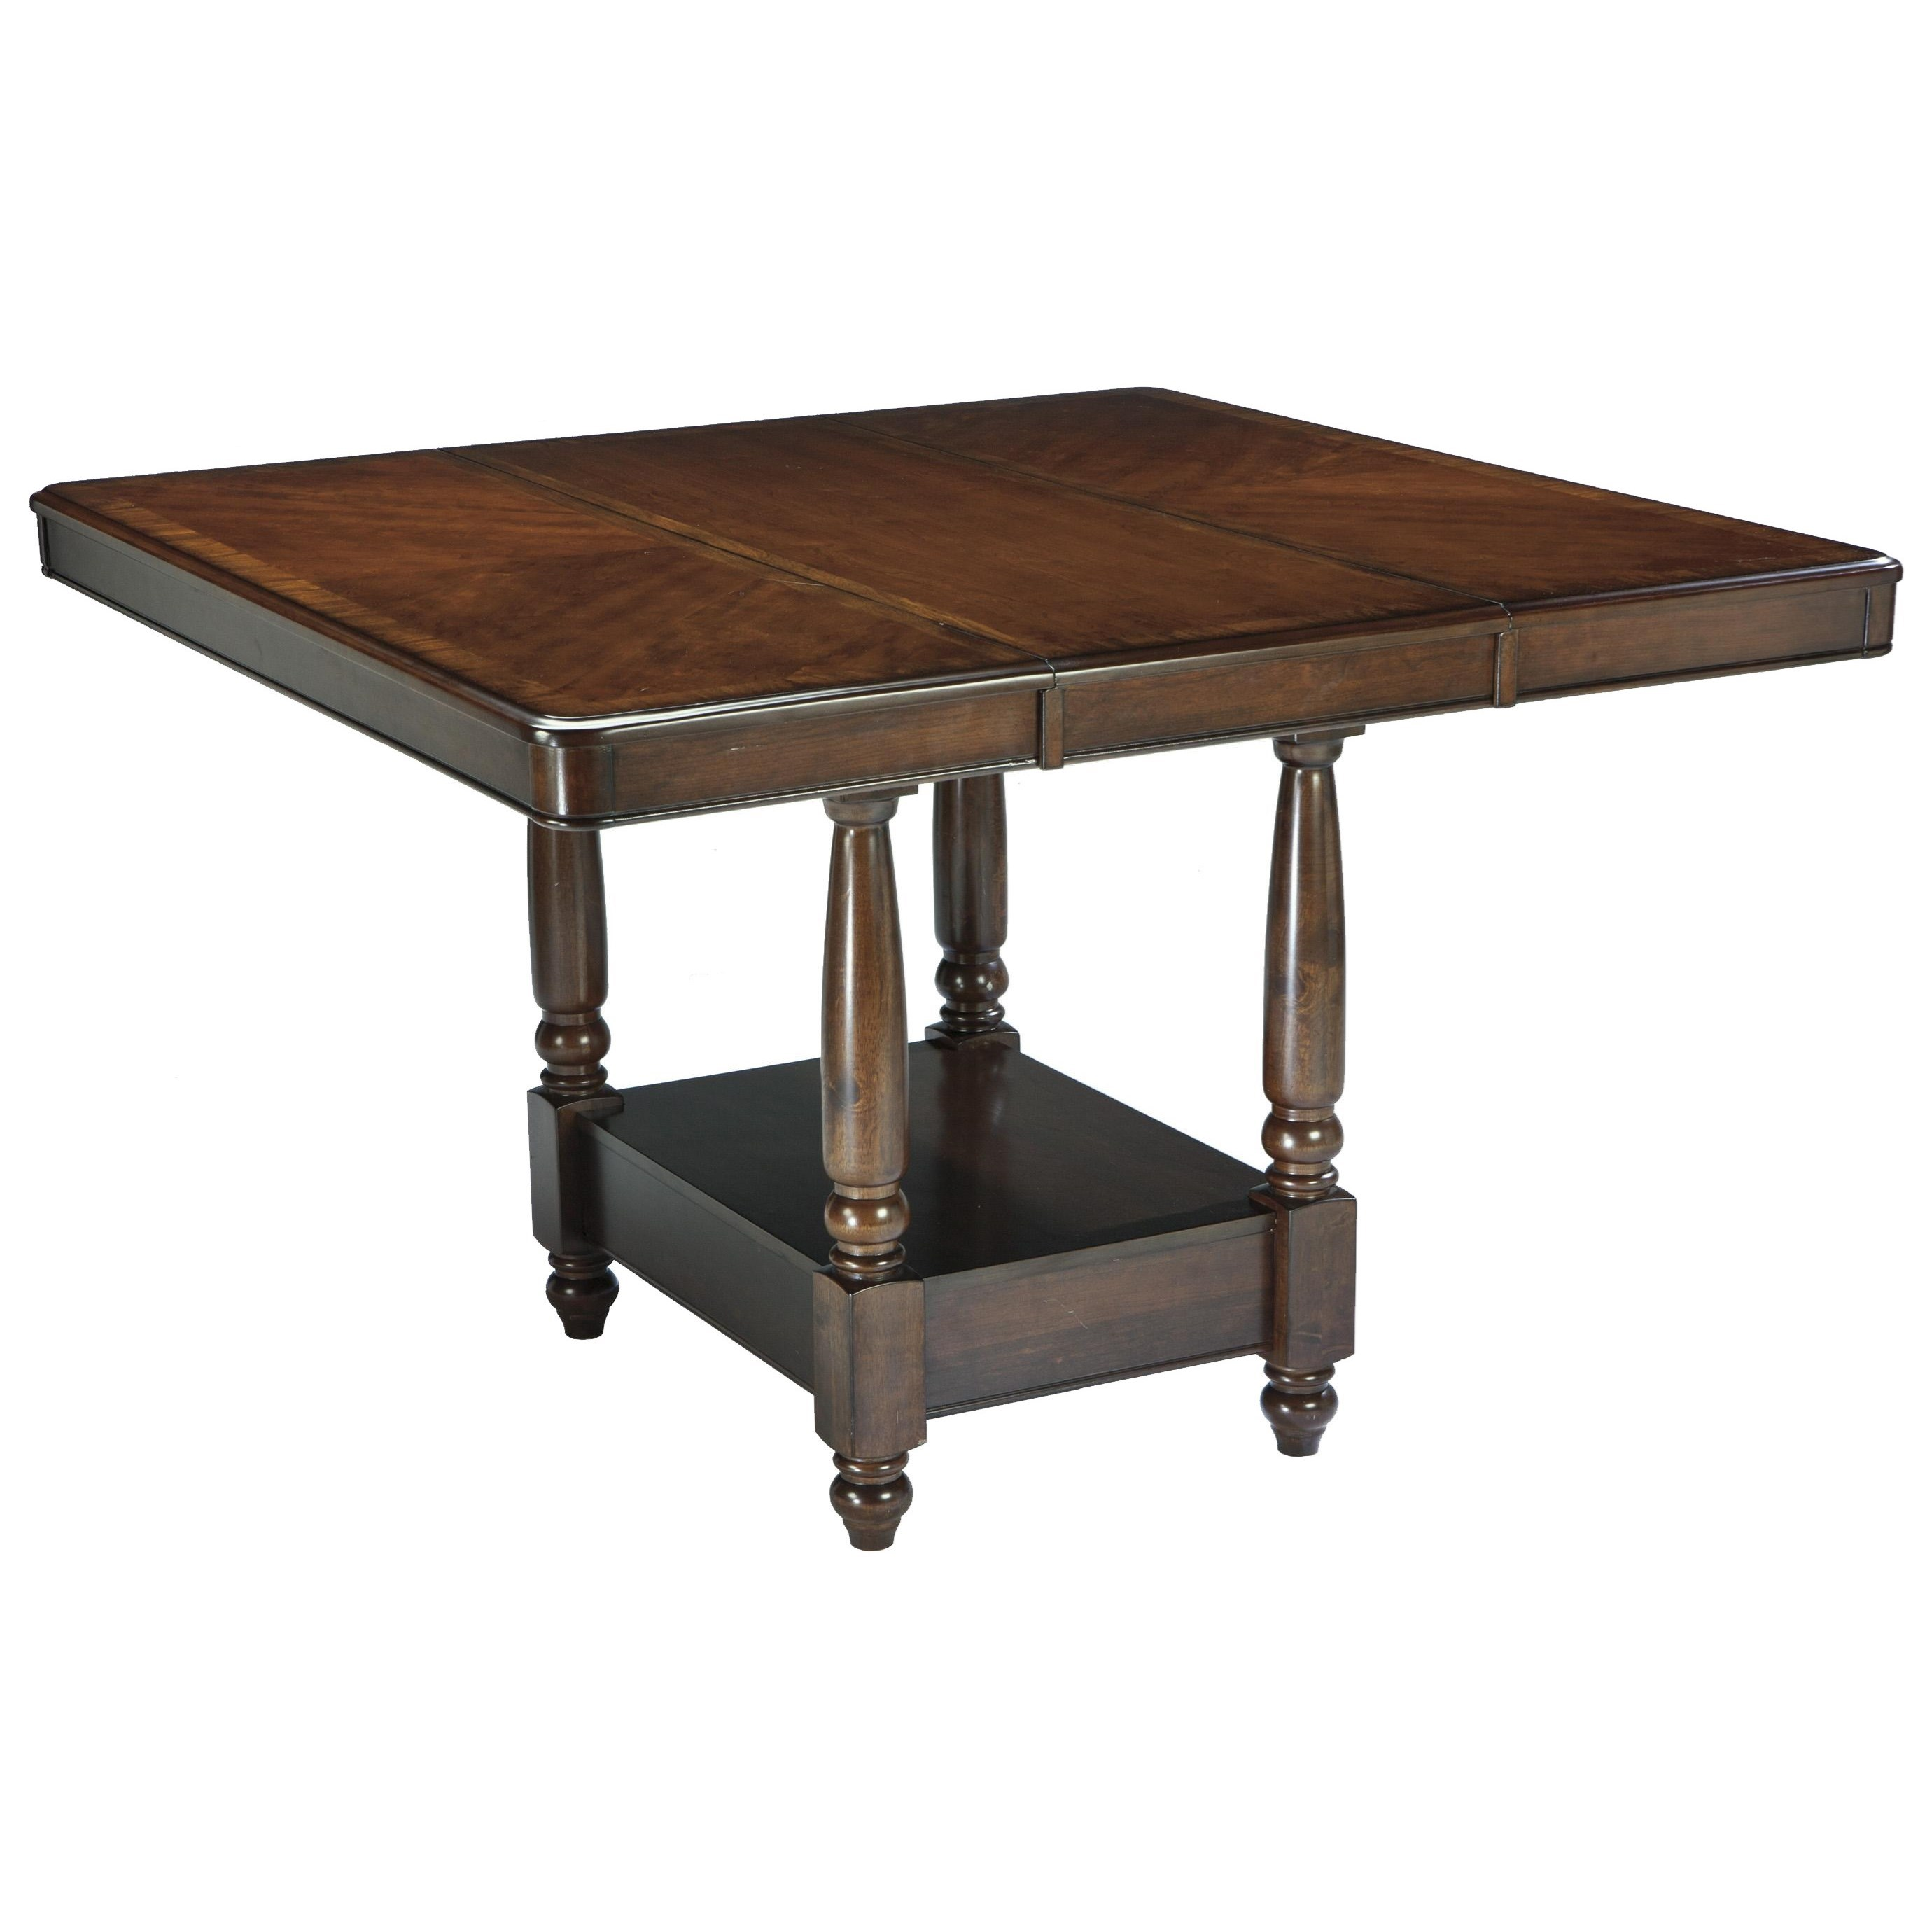 Signature Design by Ashley Leahlyn Dining Room Counter Extension Table - Item Number: D436-32